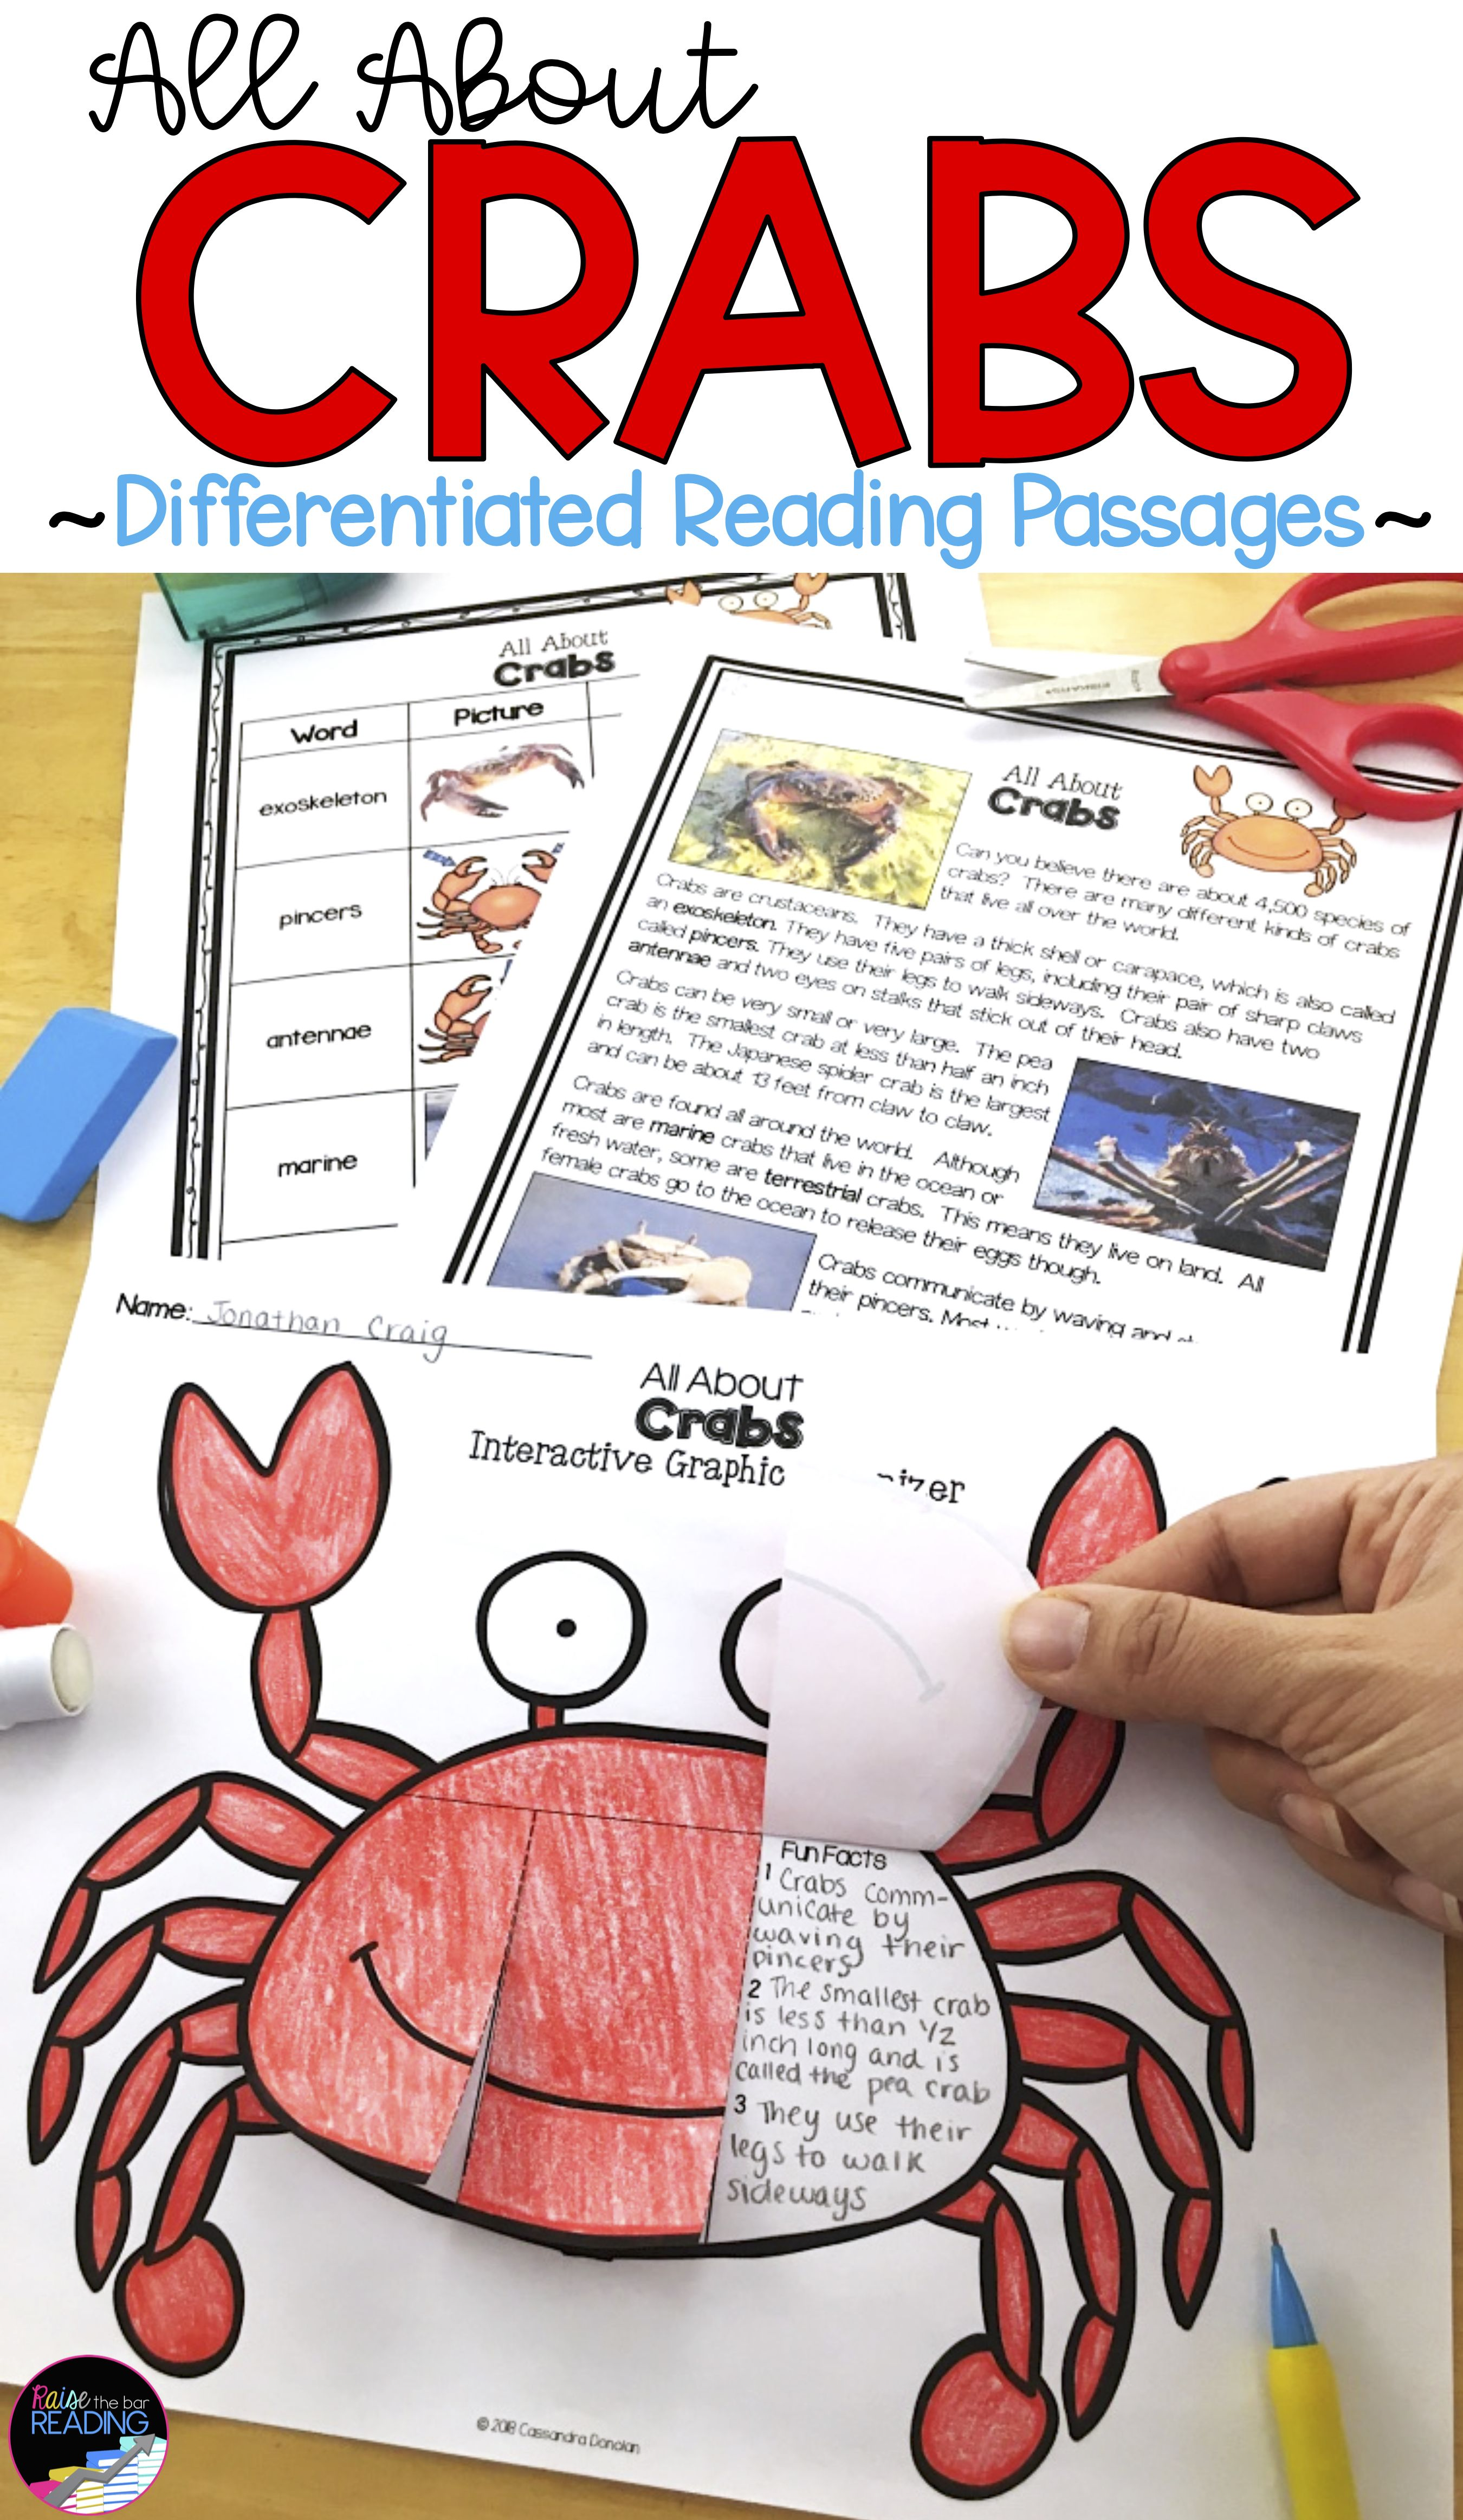 Ocean Animals Reading Crabs Differentiated Reading